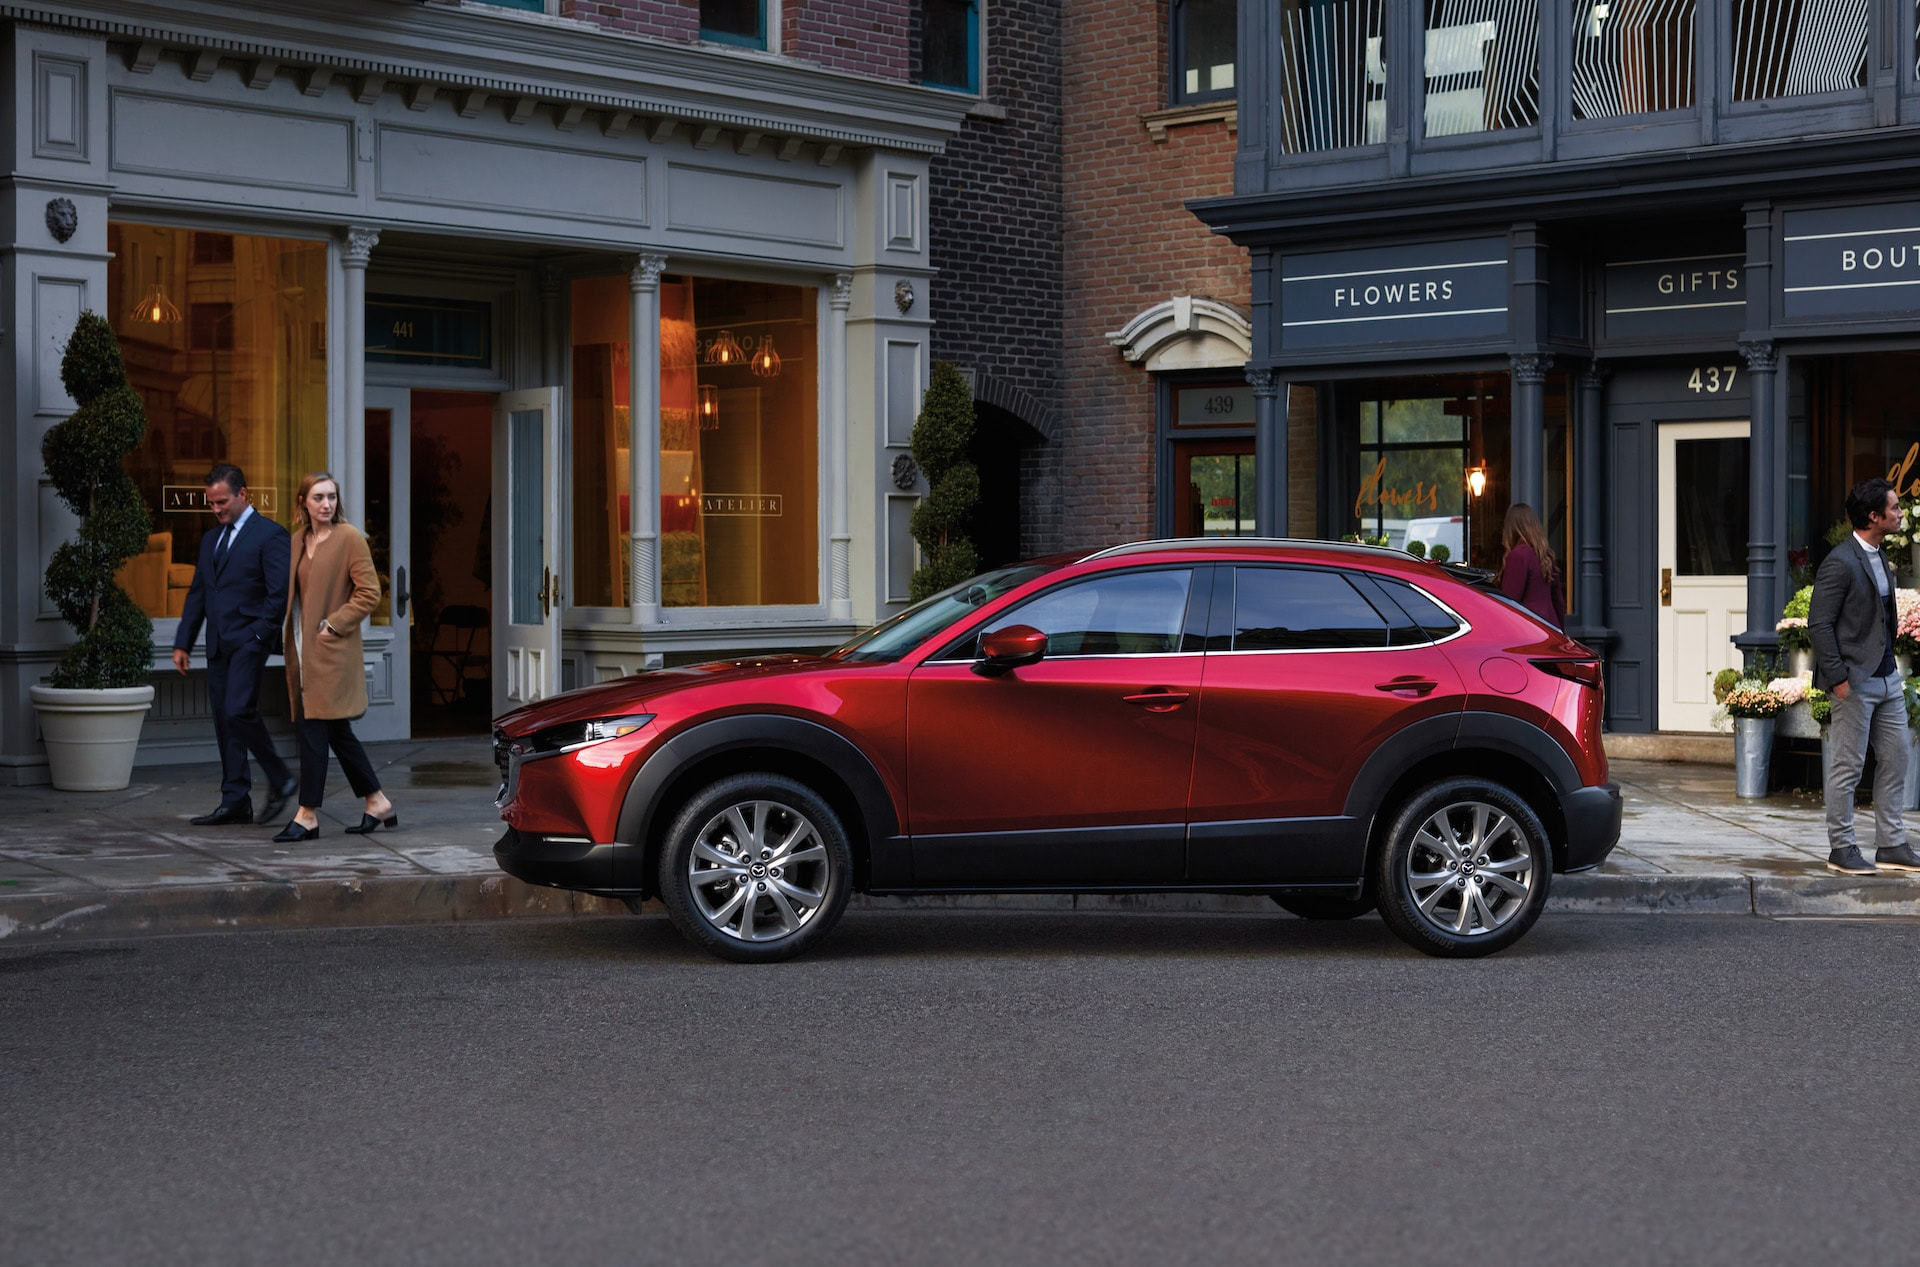 Jack Giambalvo Mazda is a Car Dealership near Hallam PA | 2020 Mazda CX-30 parked in front of shops